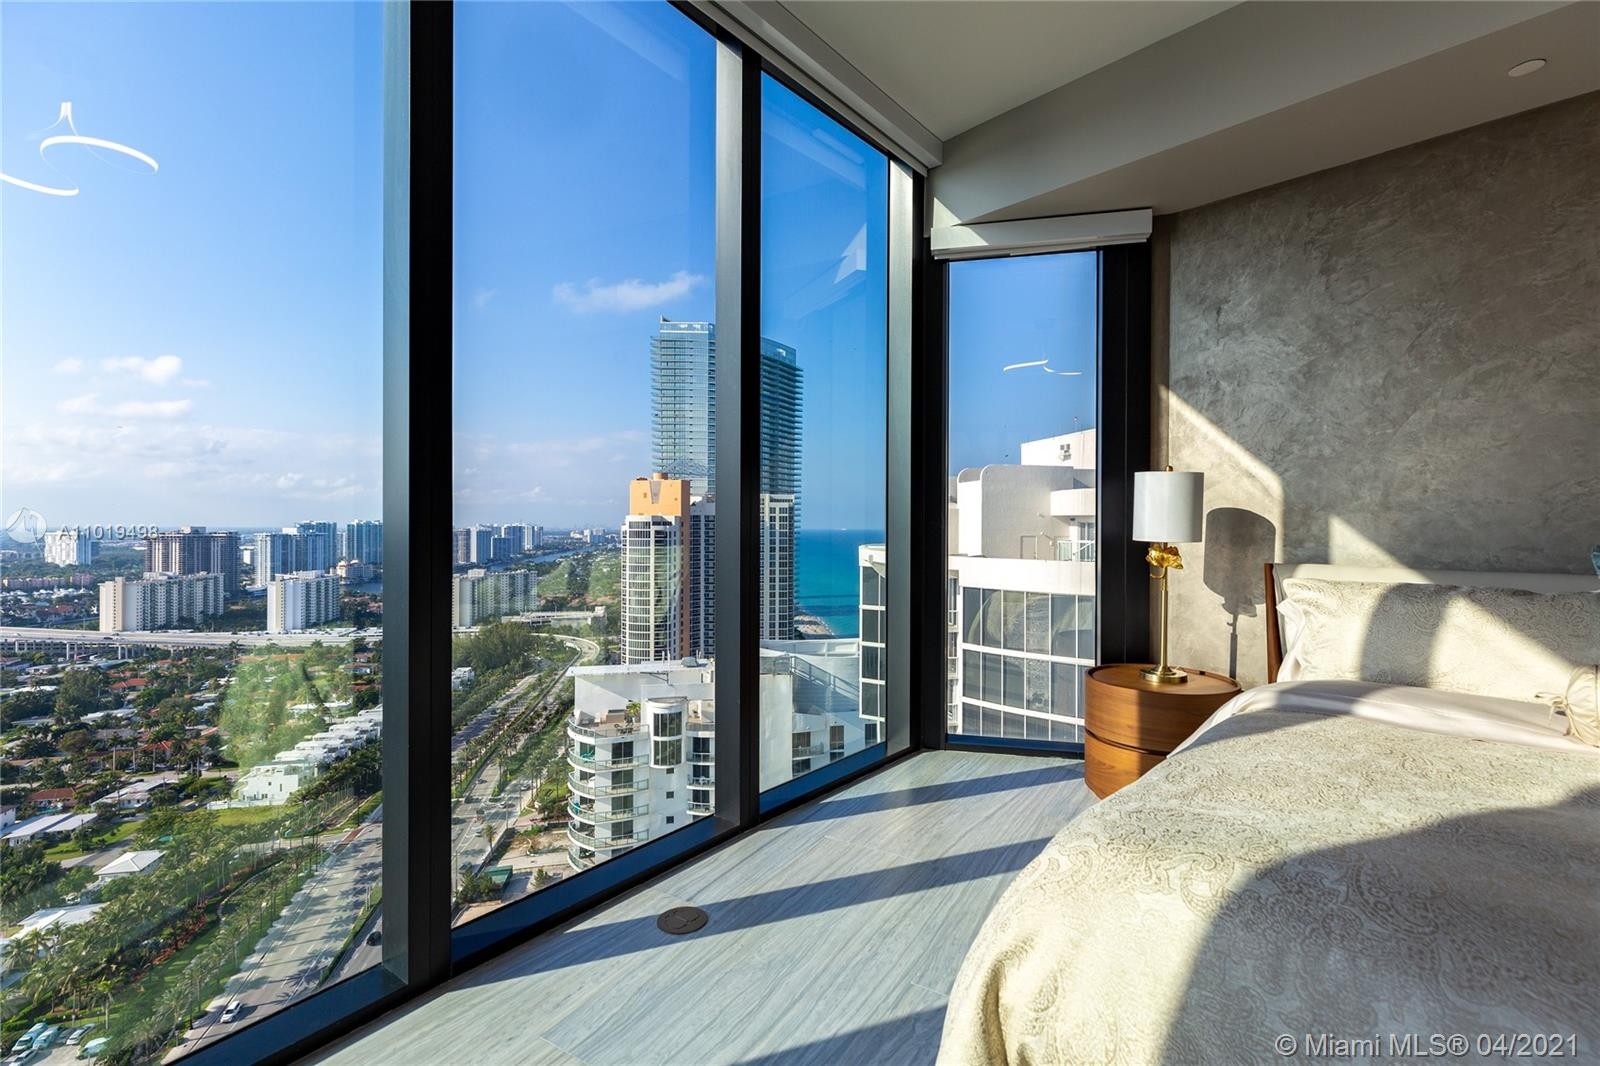 18555 Collins Ave Unit 3003, Sunny Isles Beach, Florida 33160